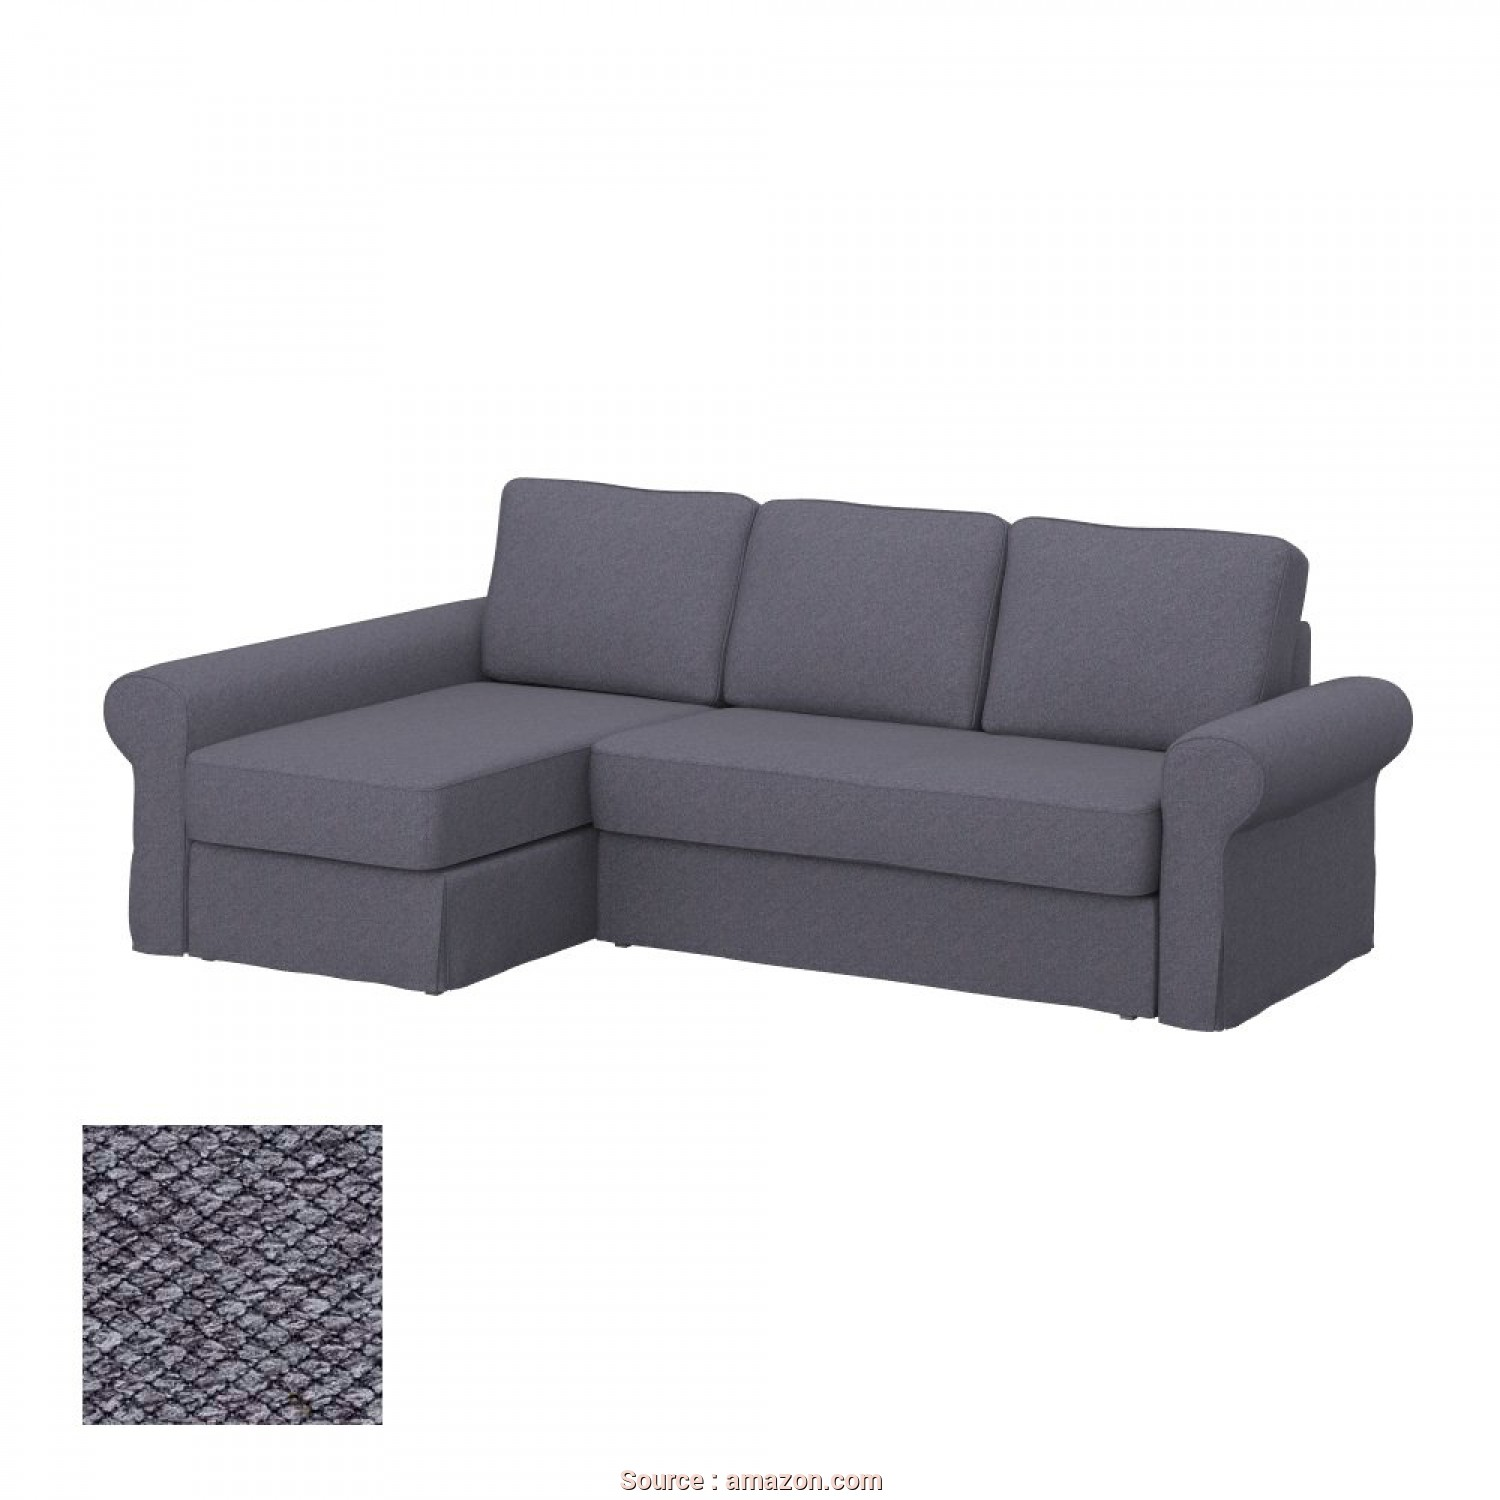 Ikea Backabro Willhaben, Classy Amazon.Com: Soferia, Replacement Cover, IKEA BACKABRO Sofa With Chaise Longue, Nordic Anthracite: Home & Kitchen